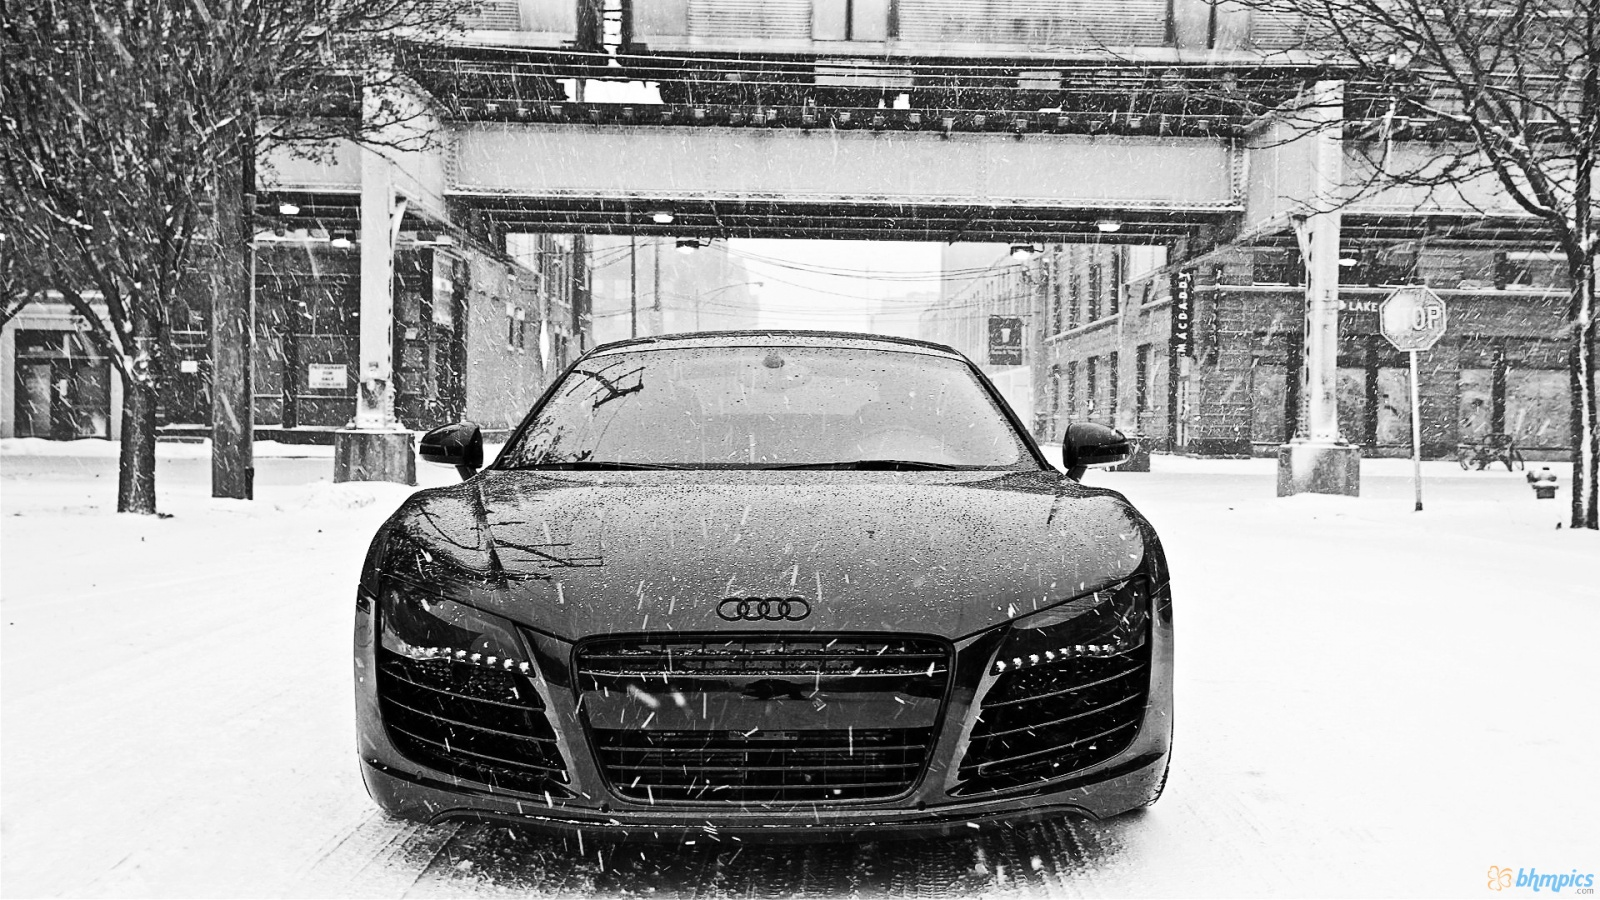 10217-audi-r8-inthe-snow-1600x900-786-hd-wallpaper-res-1600x900-.jpg